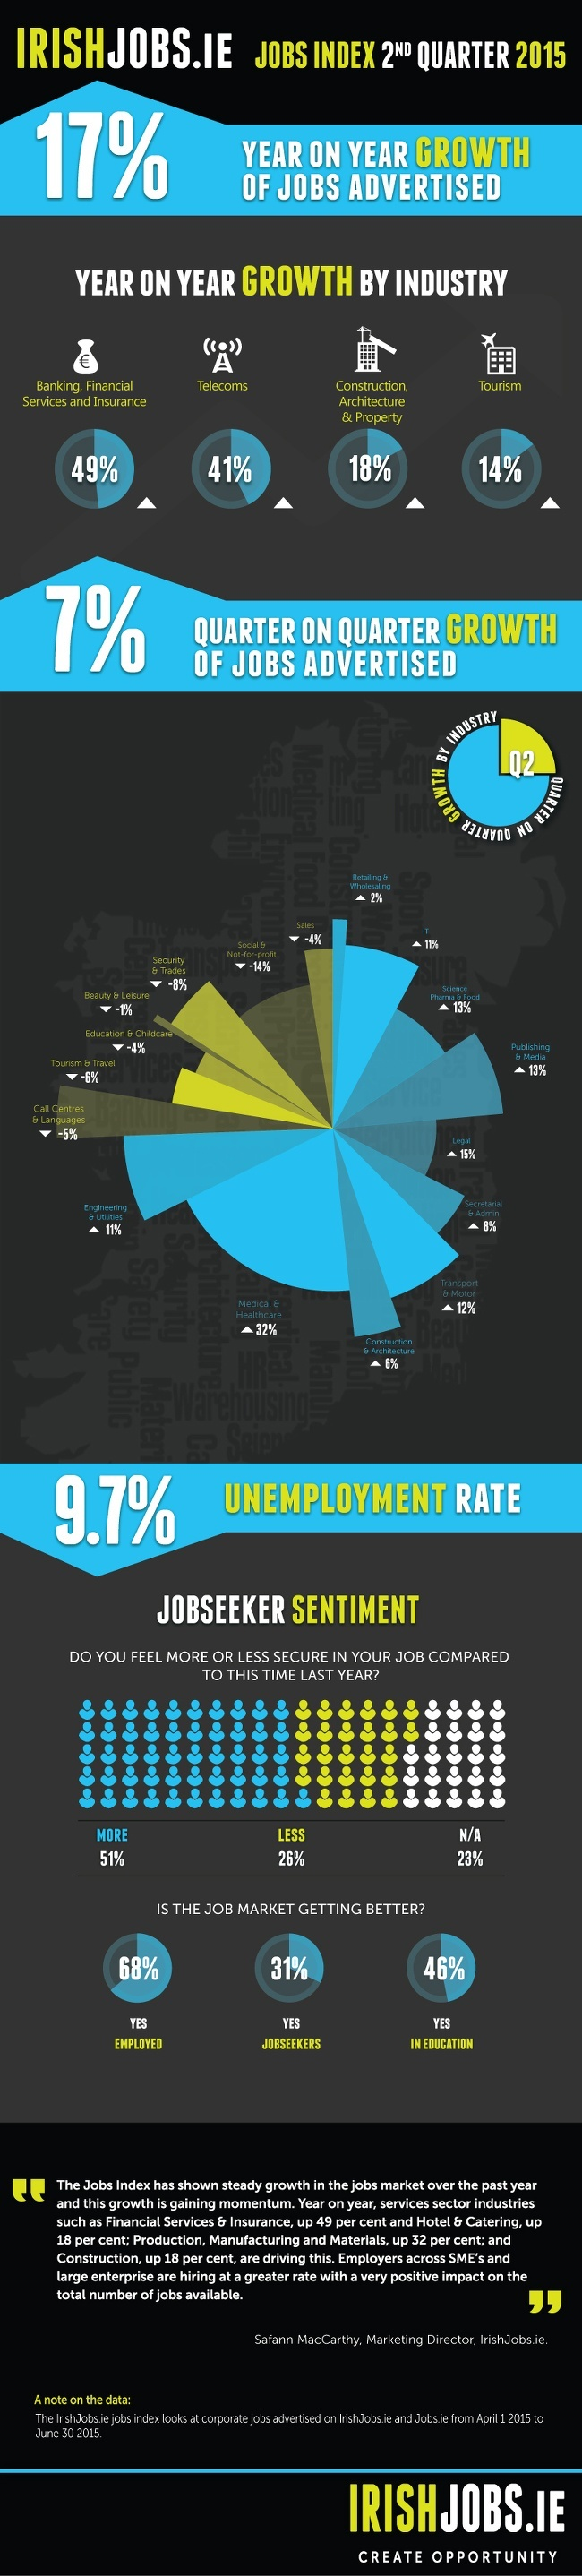 IT jobs Ireland - Irish jobs index infographic